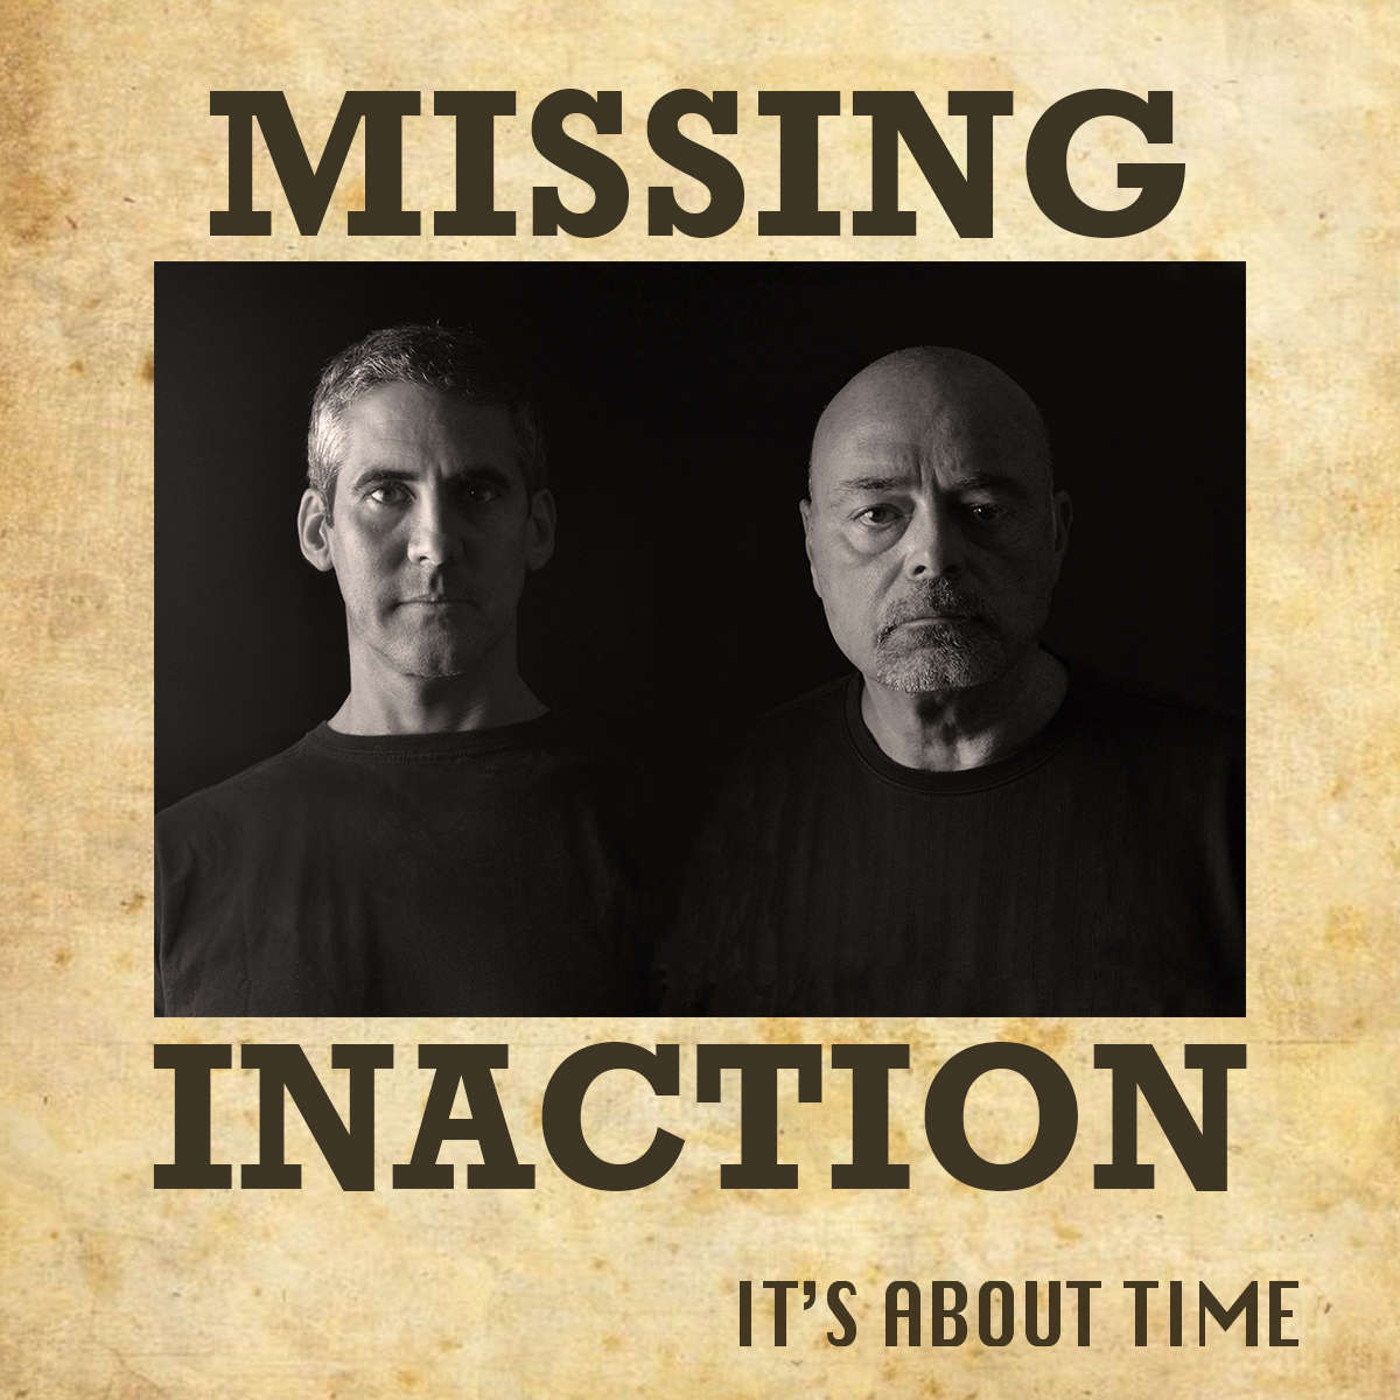 S01E13 - Missing Inaction - The series finale ends in murder